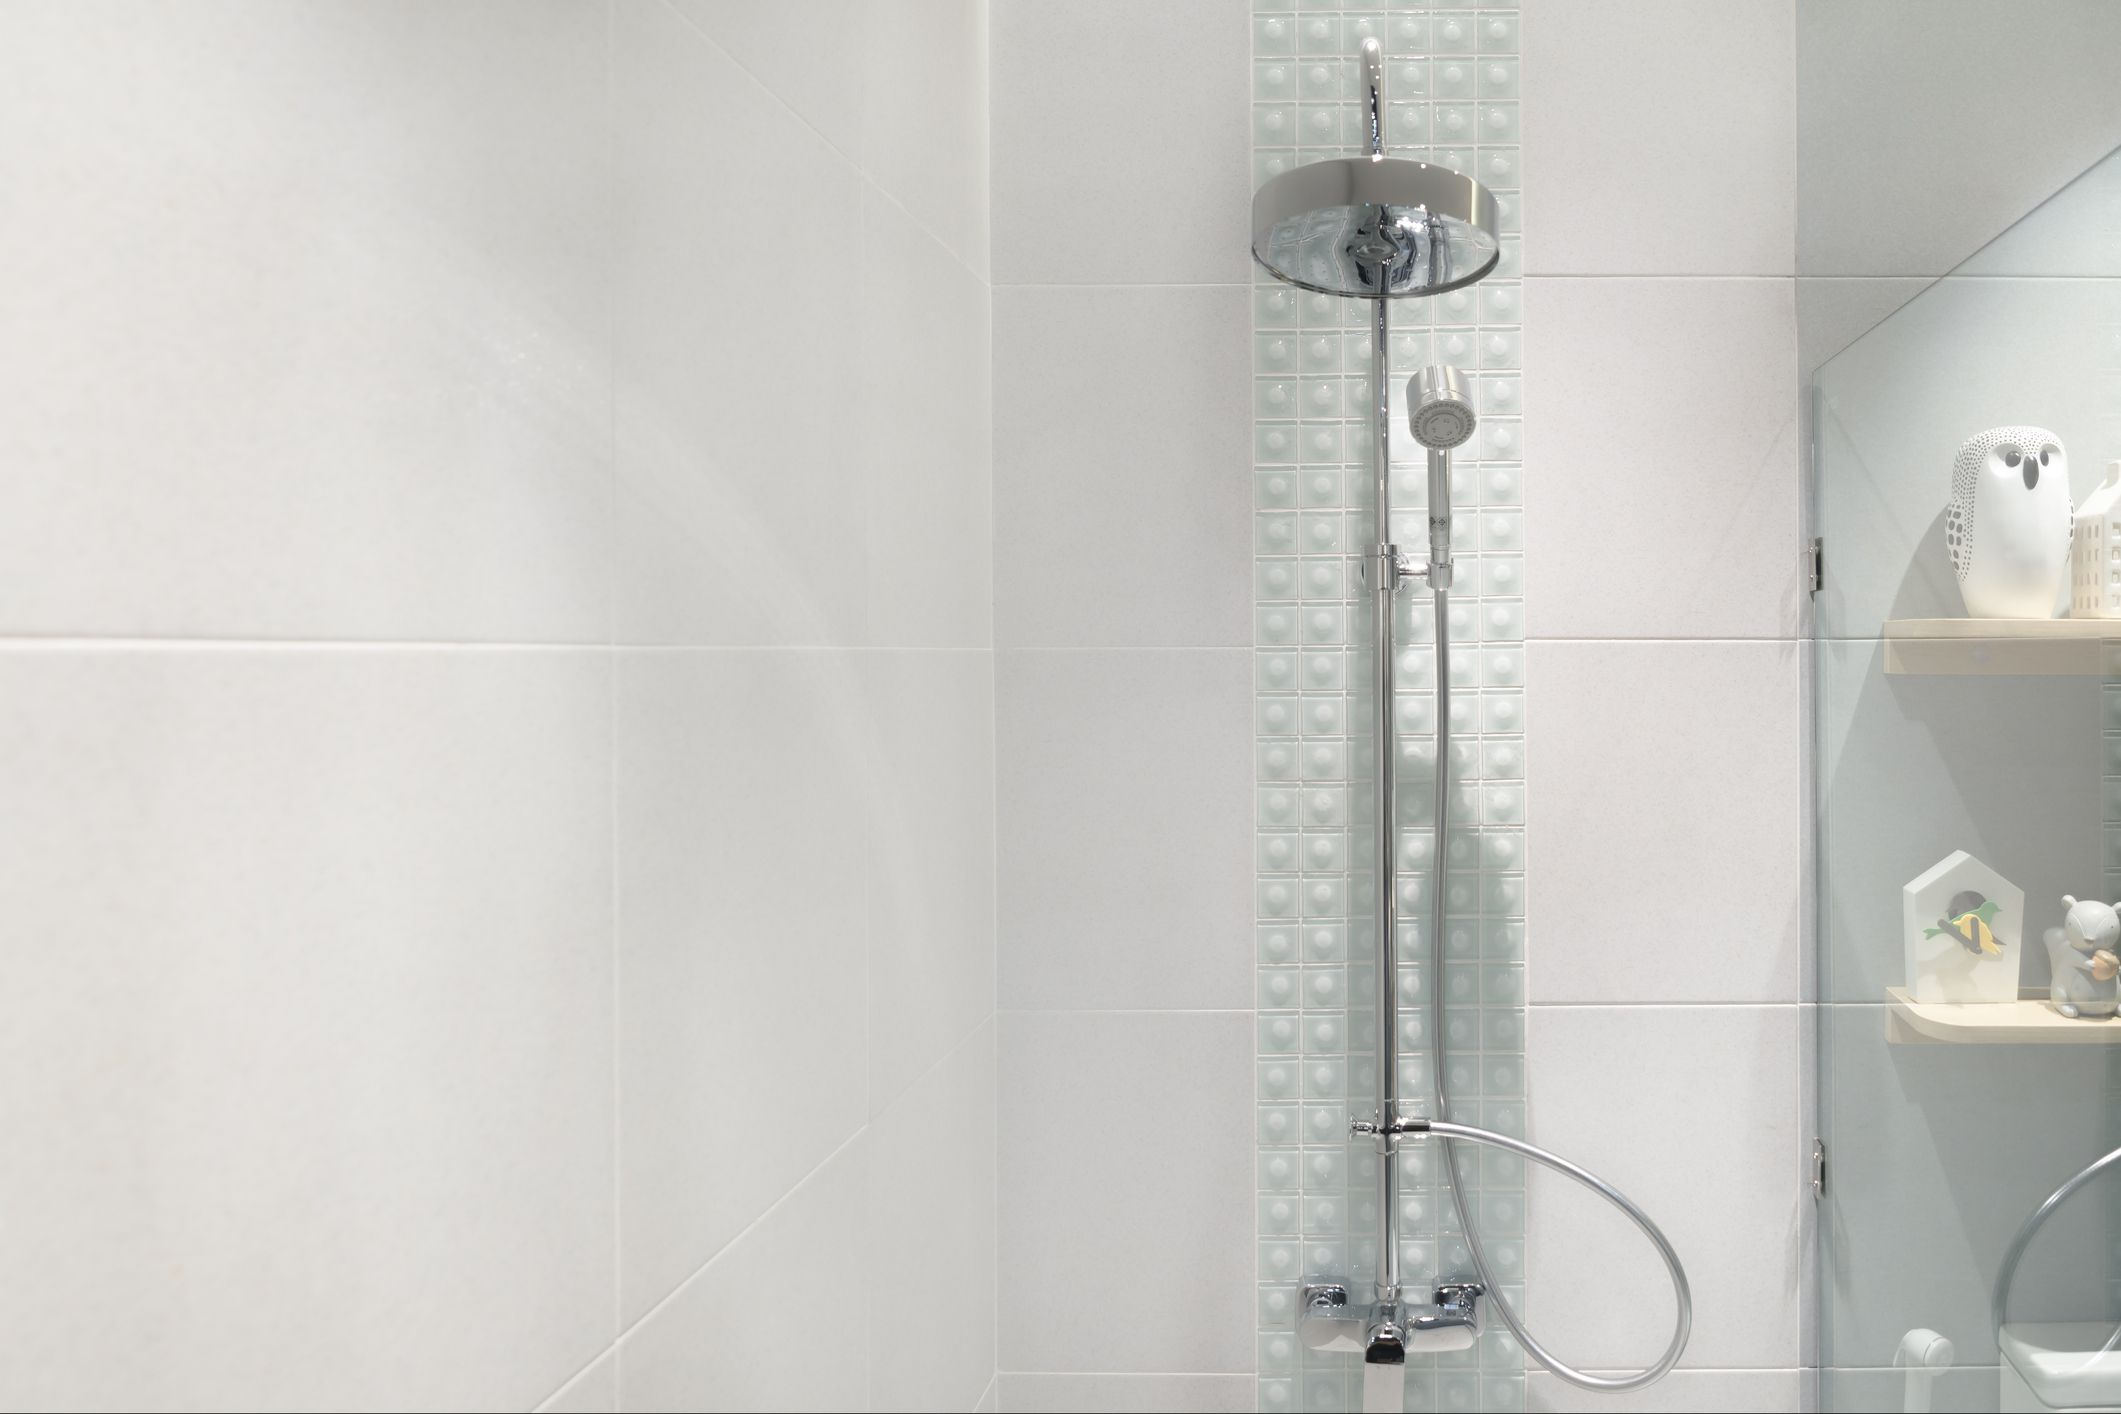 How to Measure the GPM Flow Rate of a Faucet or Shower